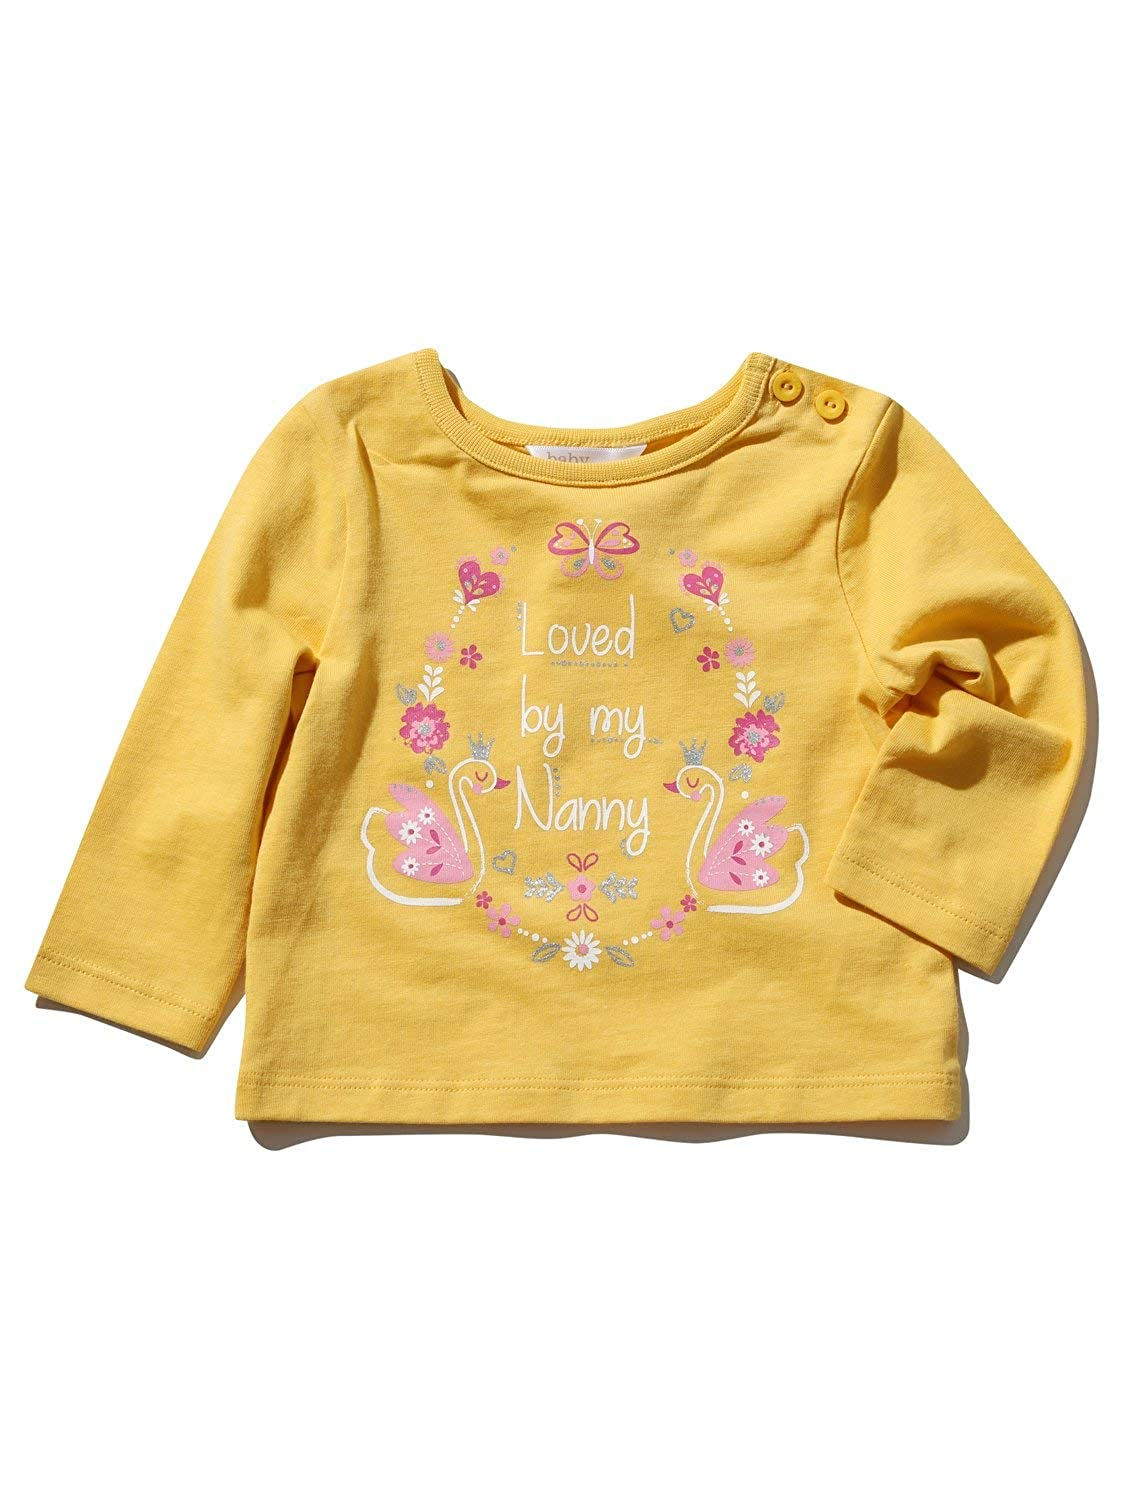 M& Co Baby Girl Mustard Yellow Cotton Long Sleeve Crew Neck Floral Nanny Slogan Print T-Shirt